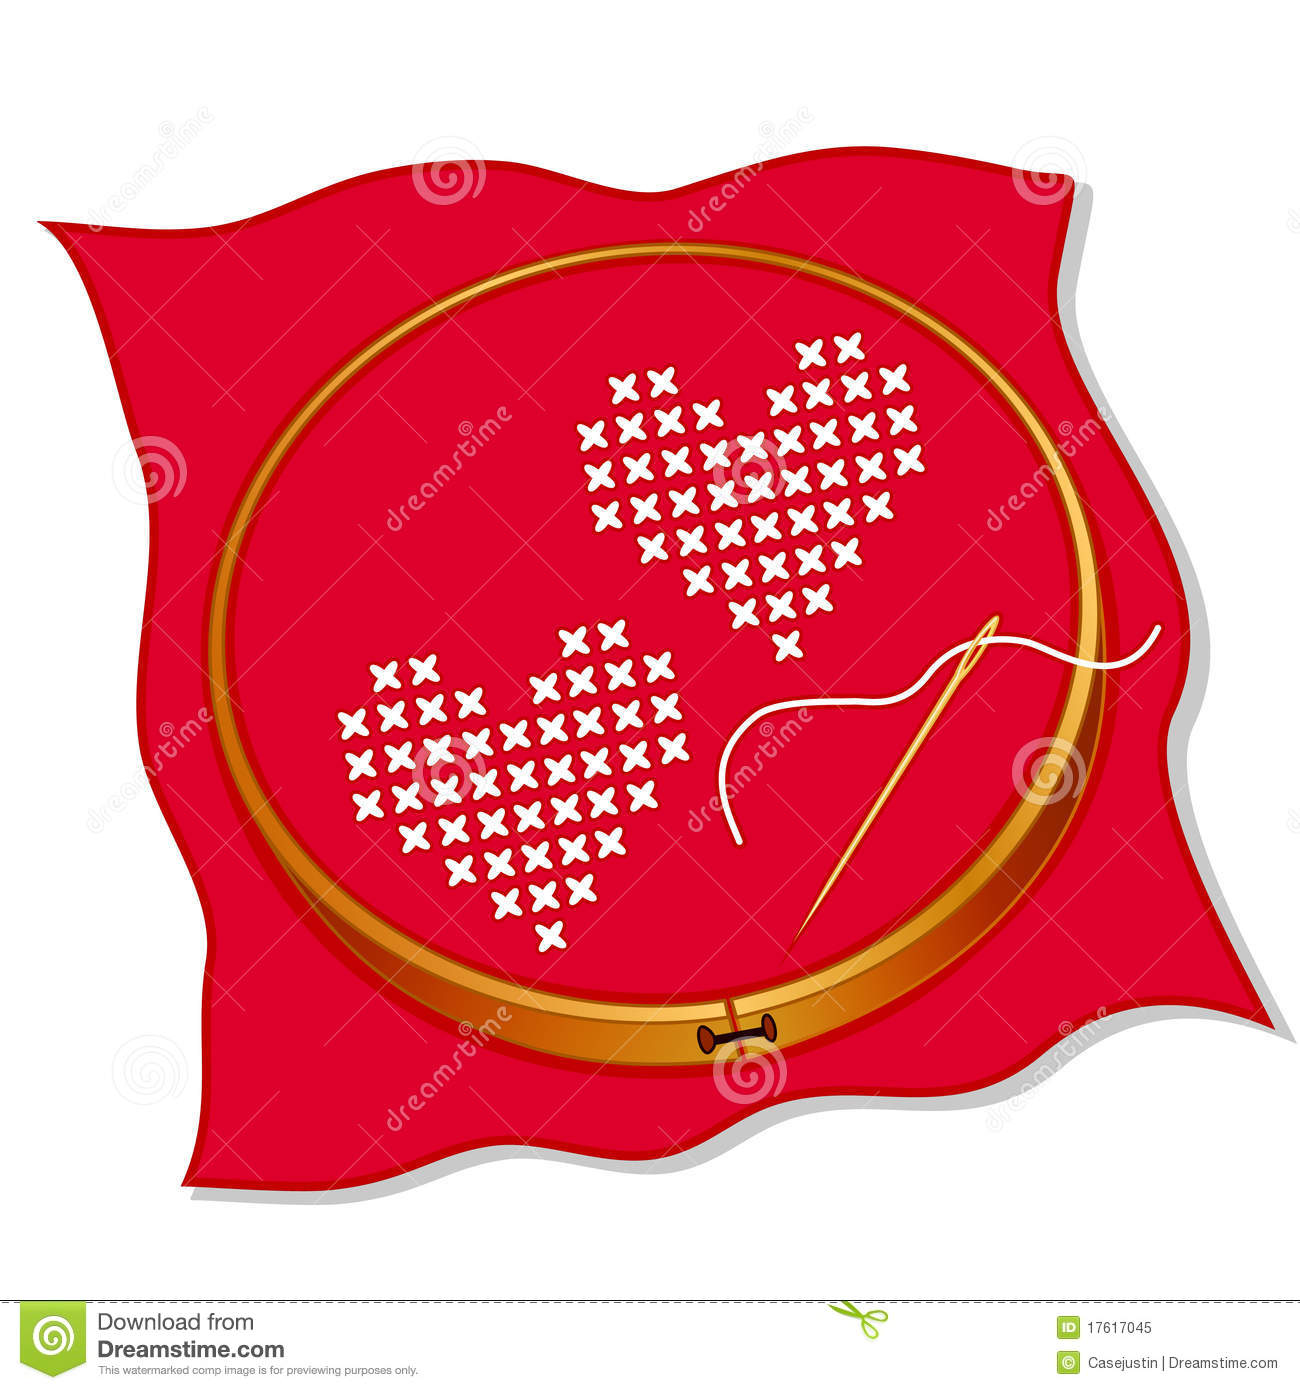 hight resolution of two hearts cross stitch embroidery